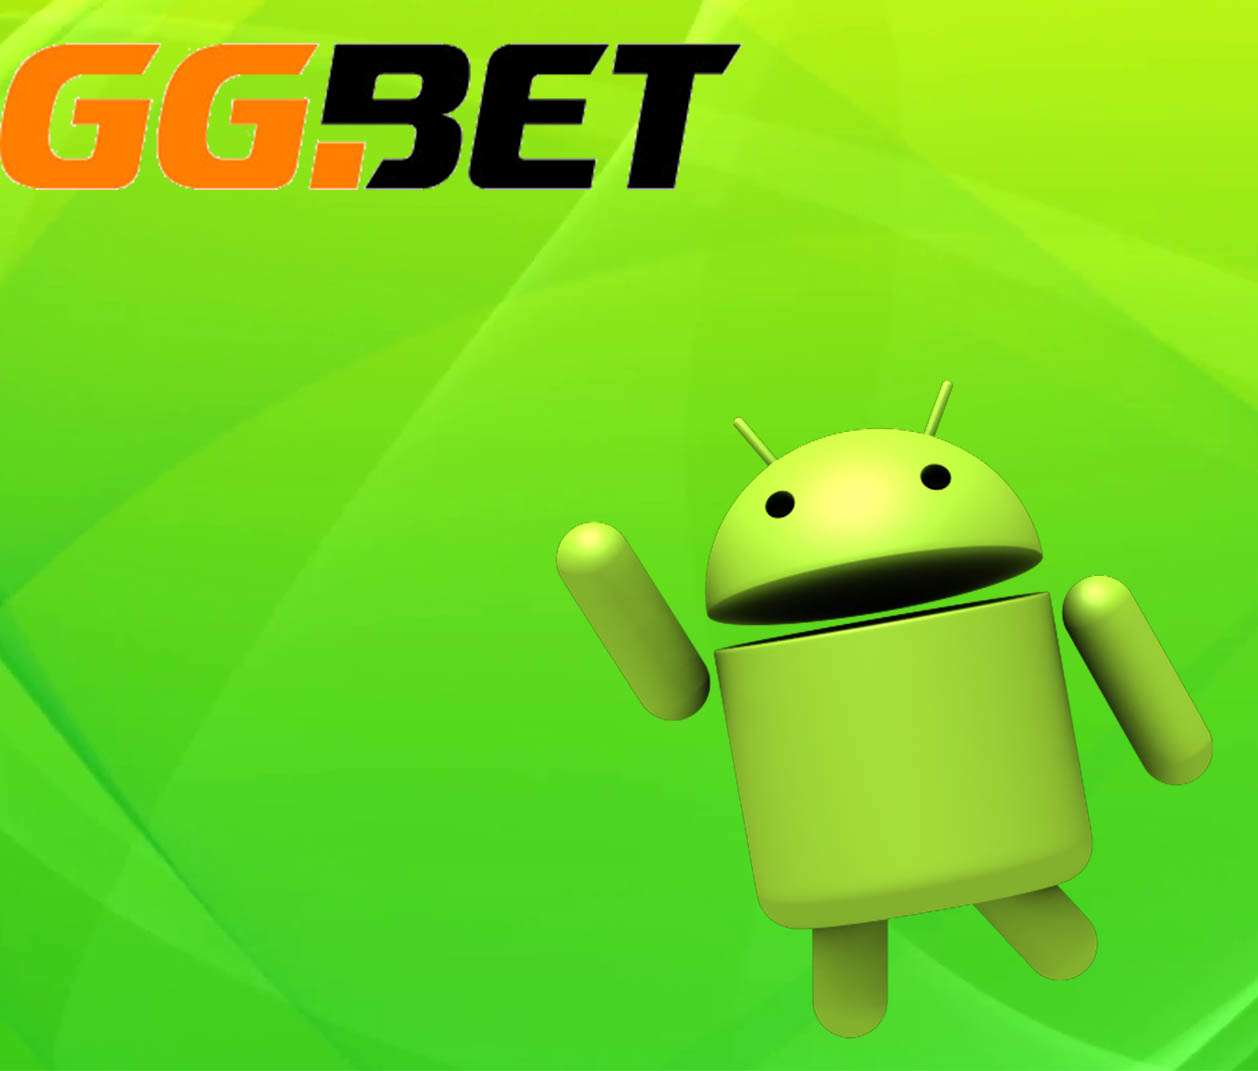 download GGbet Android app